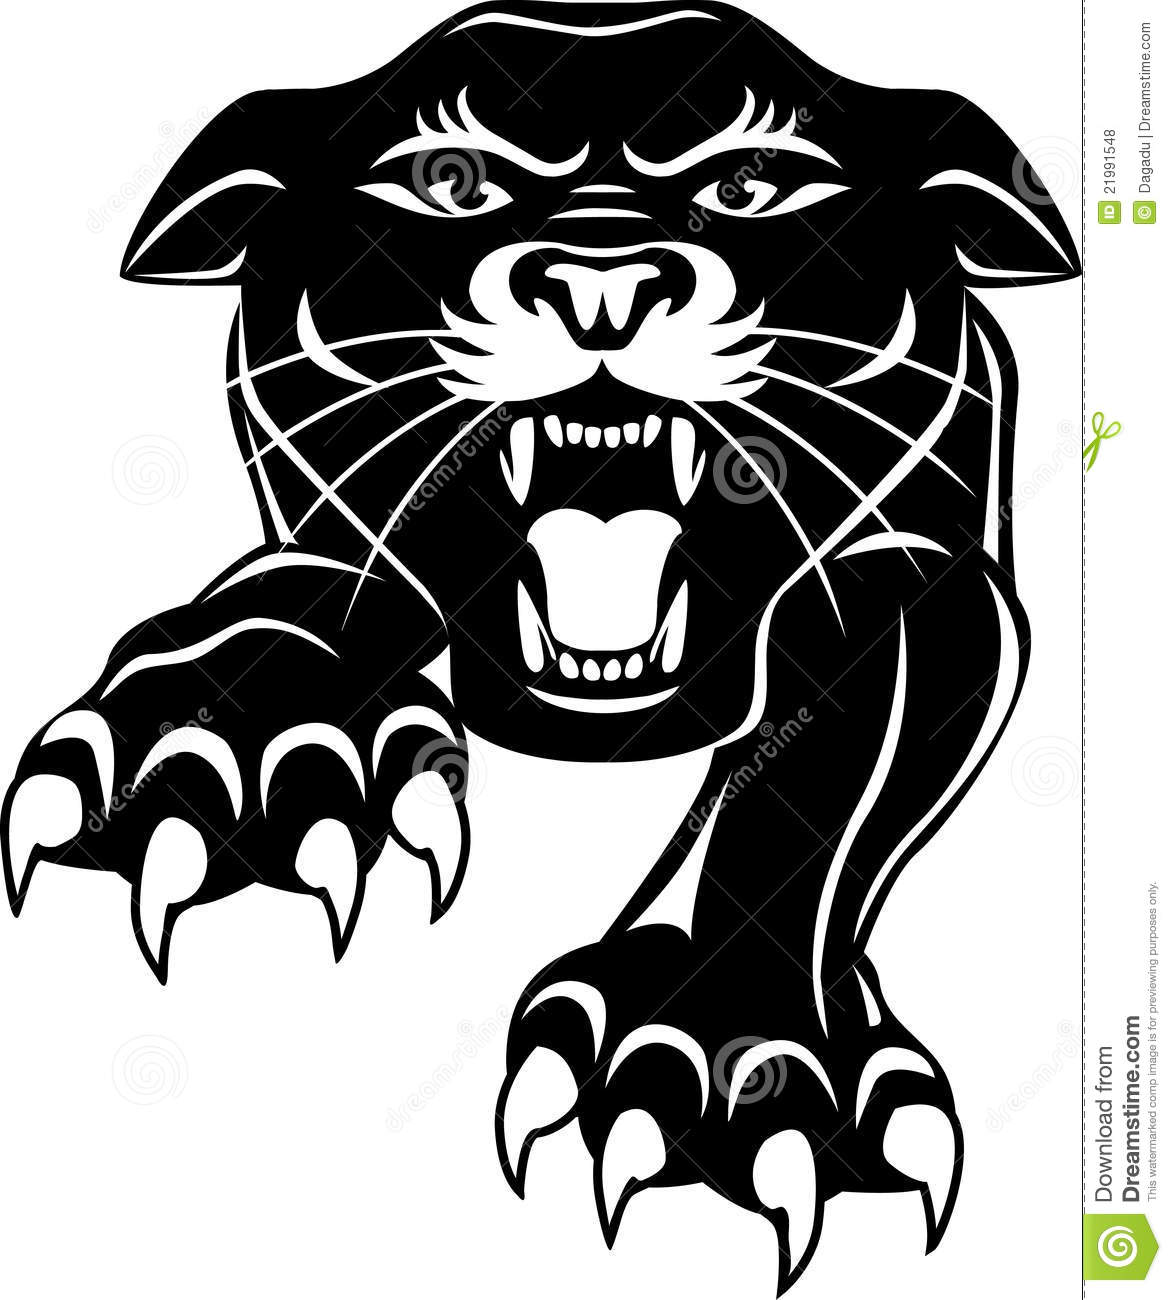 Panther clipart black thing Art head #8721 Clip Silhouettes